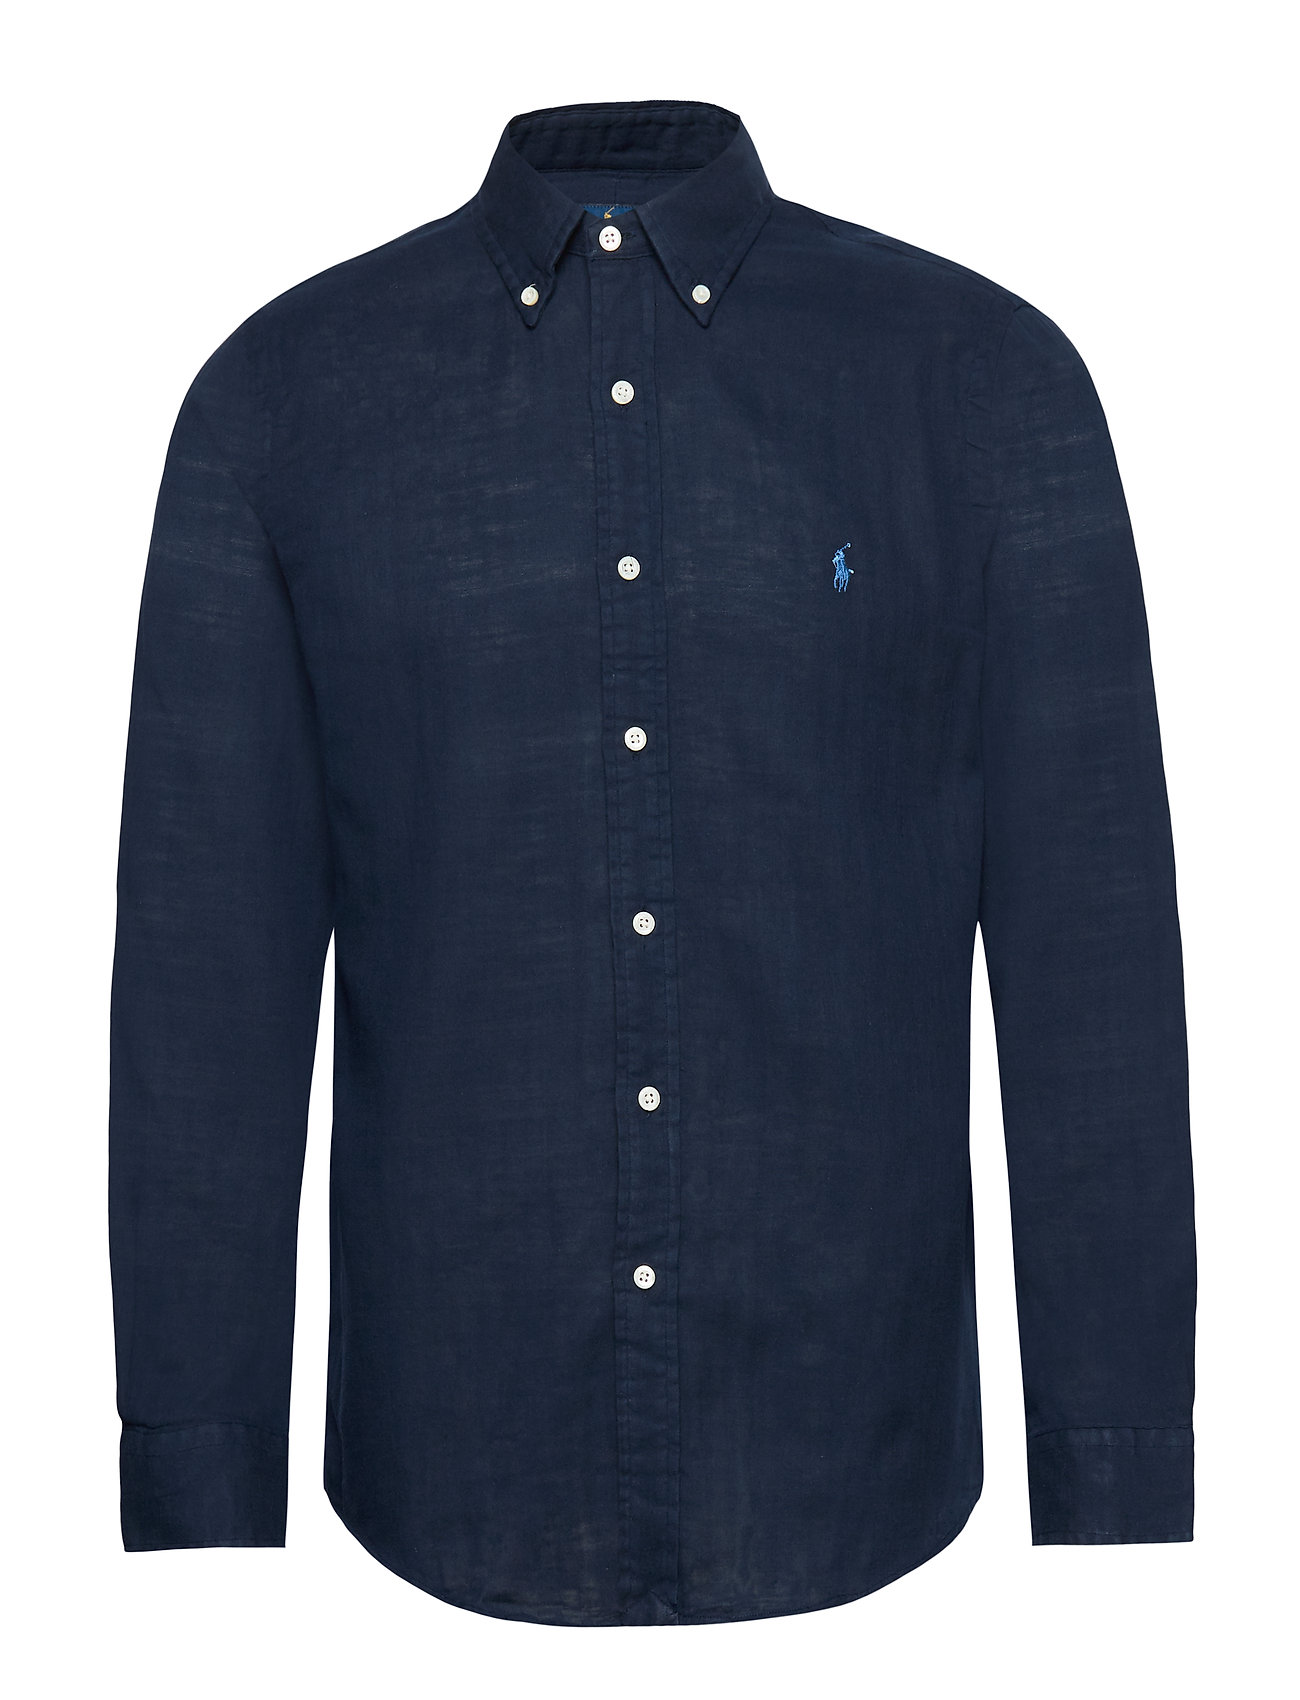 Polo Ralph Lauren Custom Fit Double-Faced Shirt - CRUISE NAVY